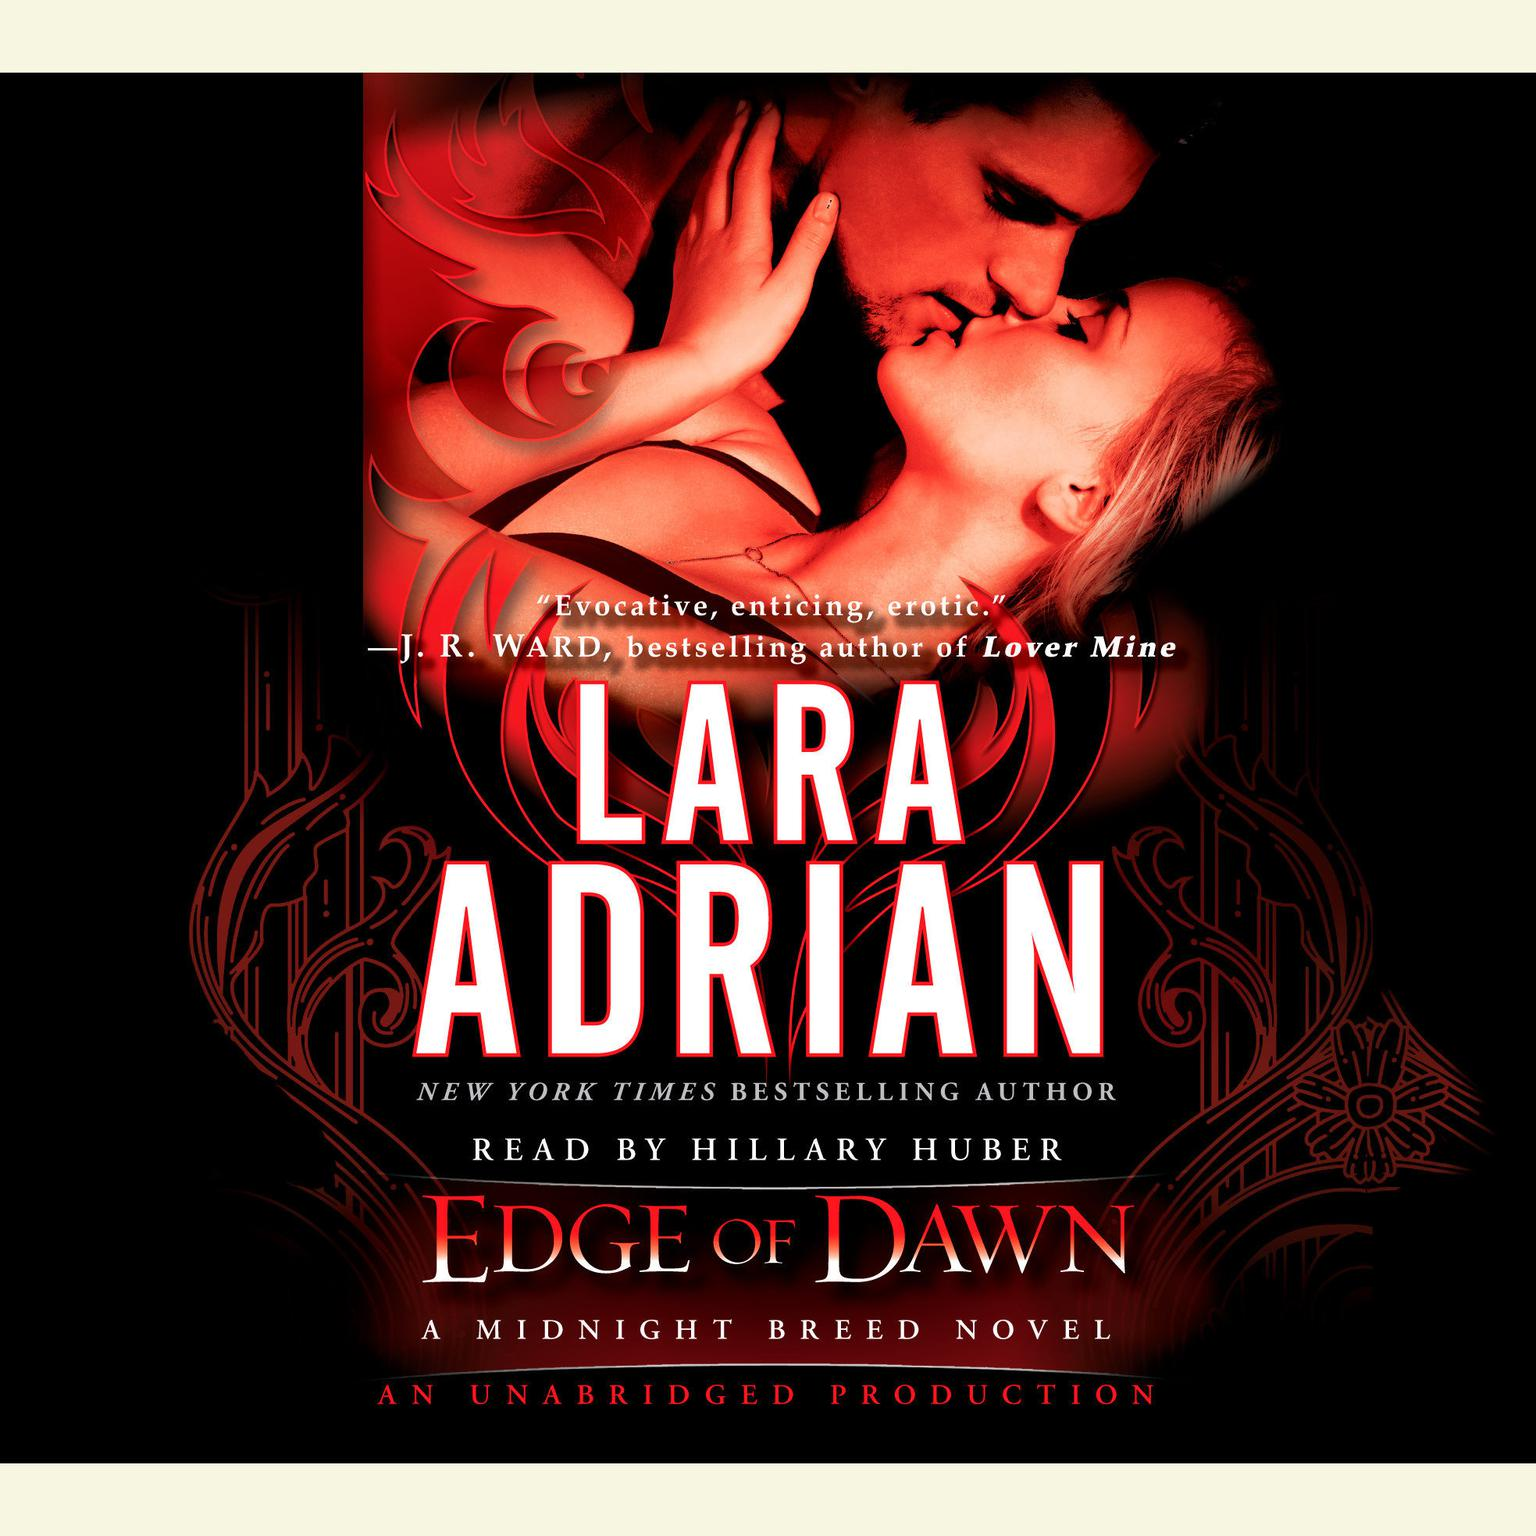 Printable Edge of Dawn: A Midnight Breed Novel Audiobook Cover Art